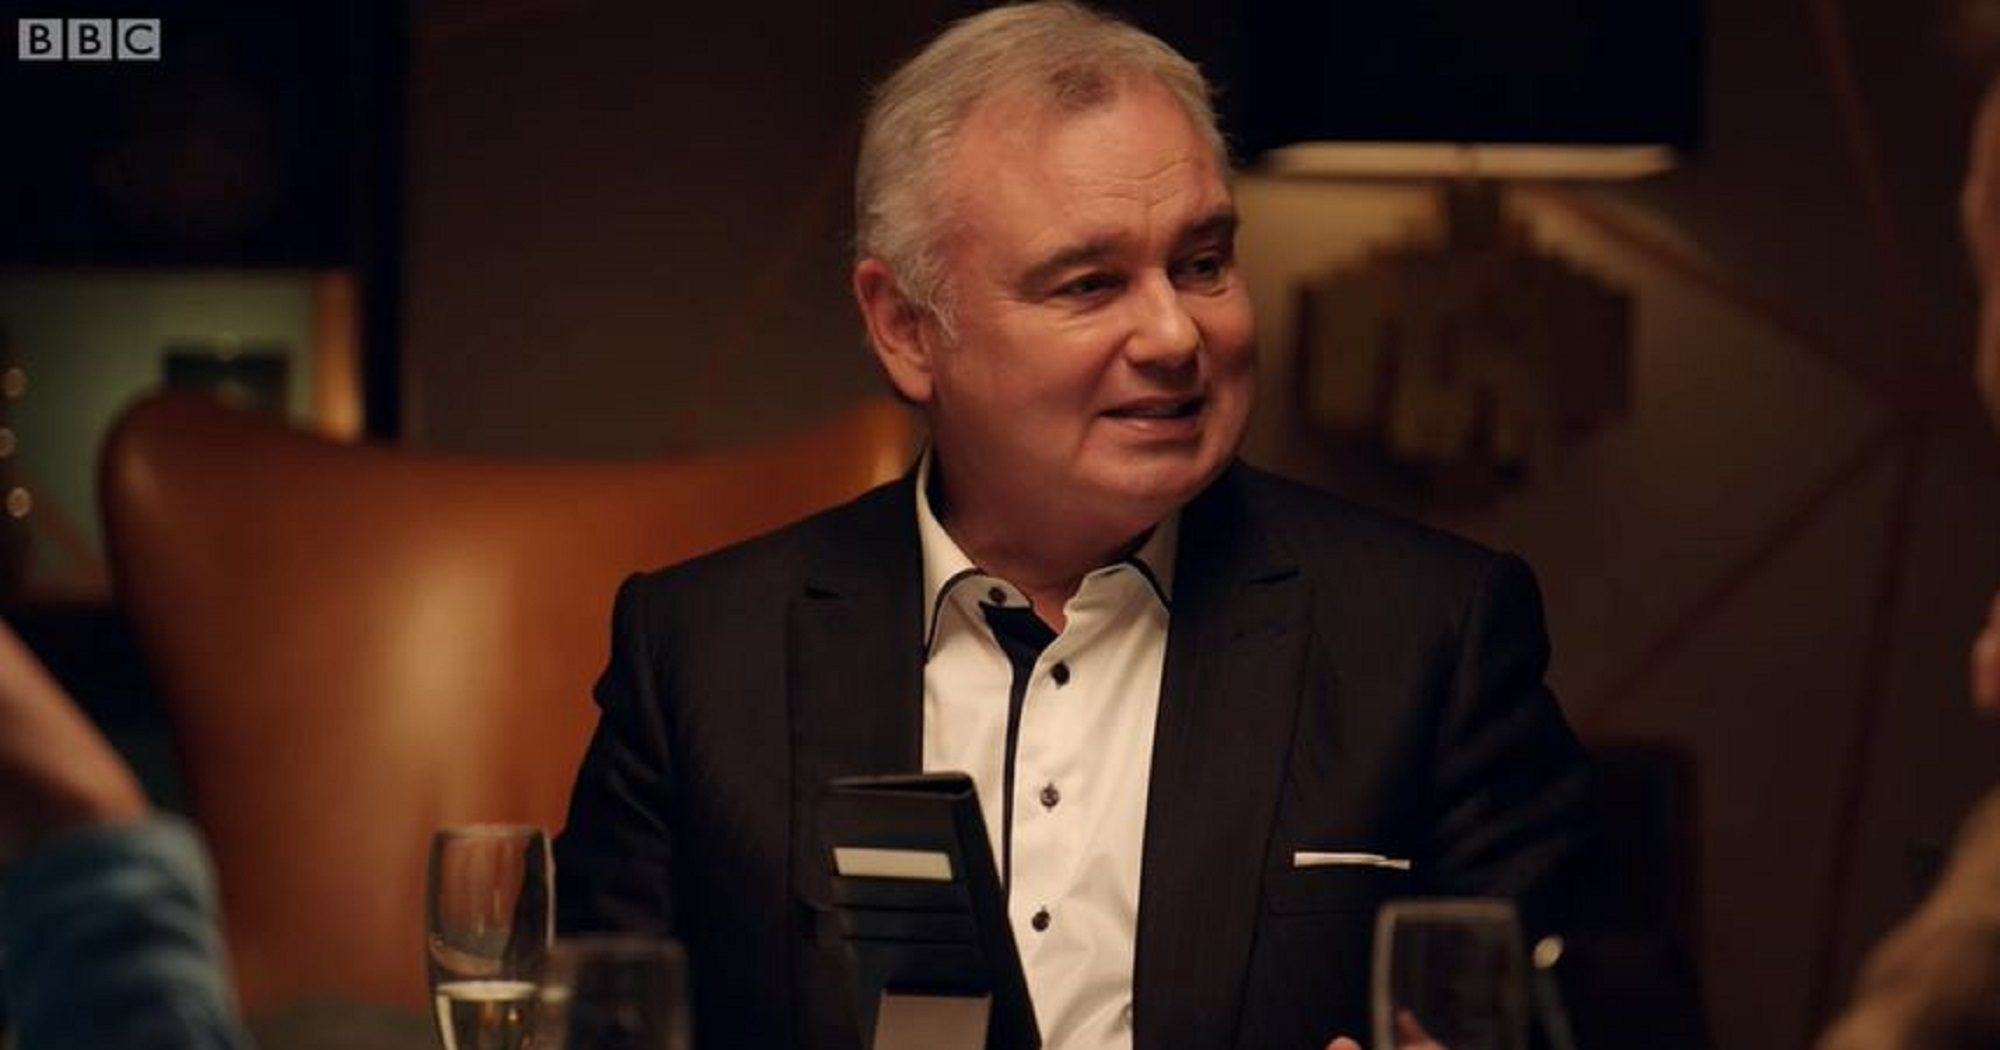 I'll Get This: Eamonn Holmes' controversial 5G comments come back to haunt him